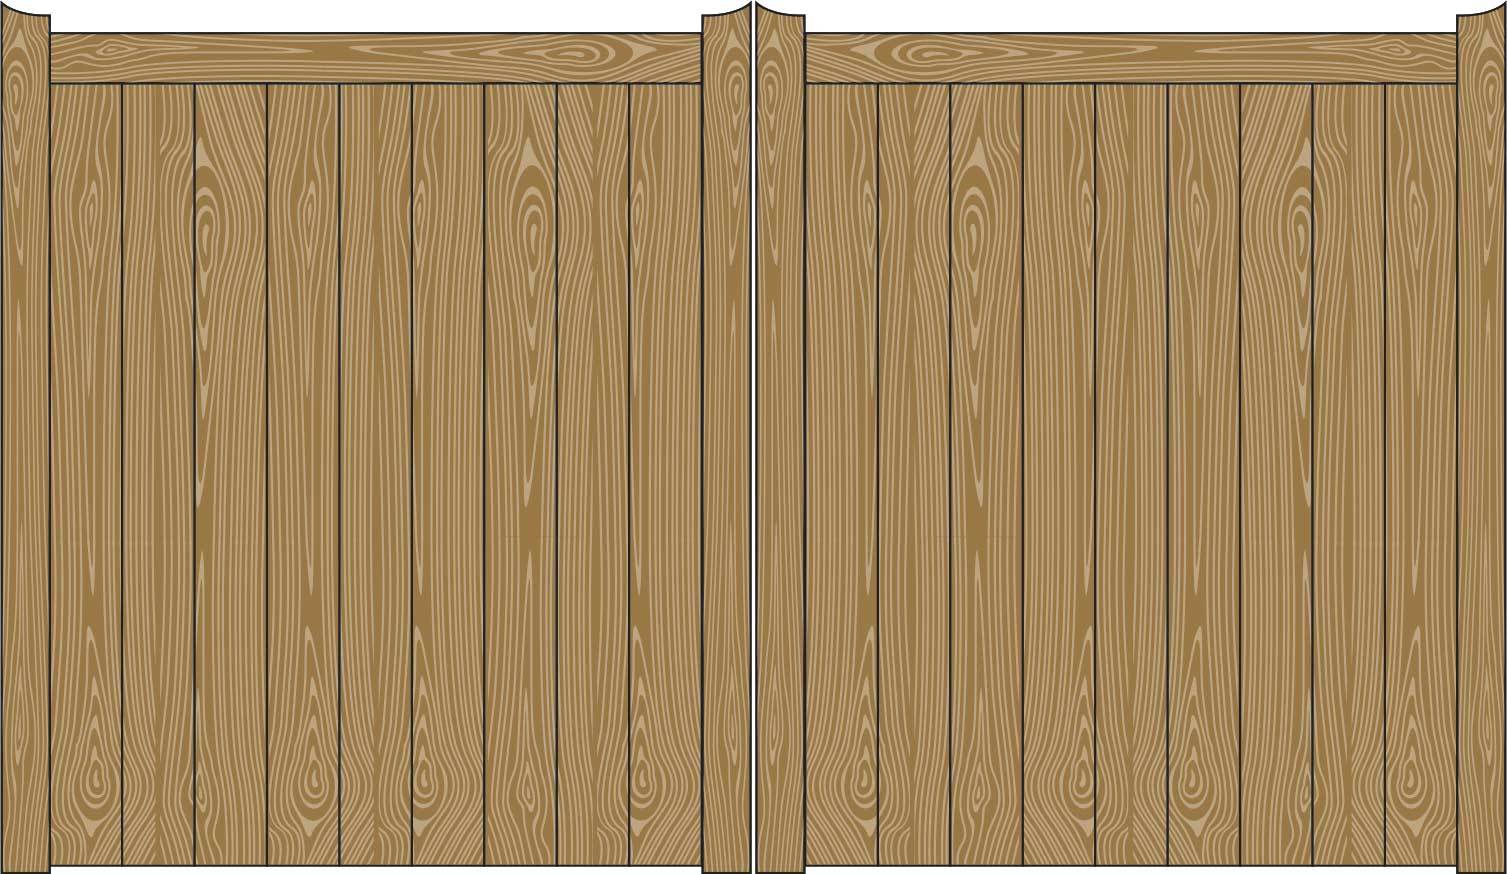 Oxley Gates Wooden Beverley illustration